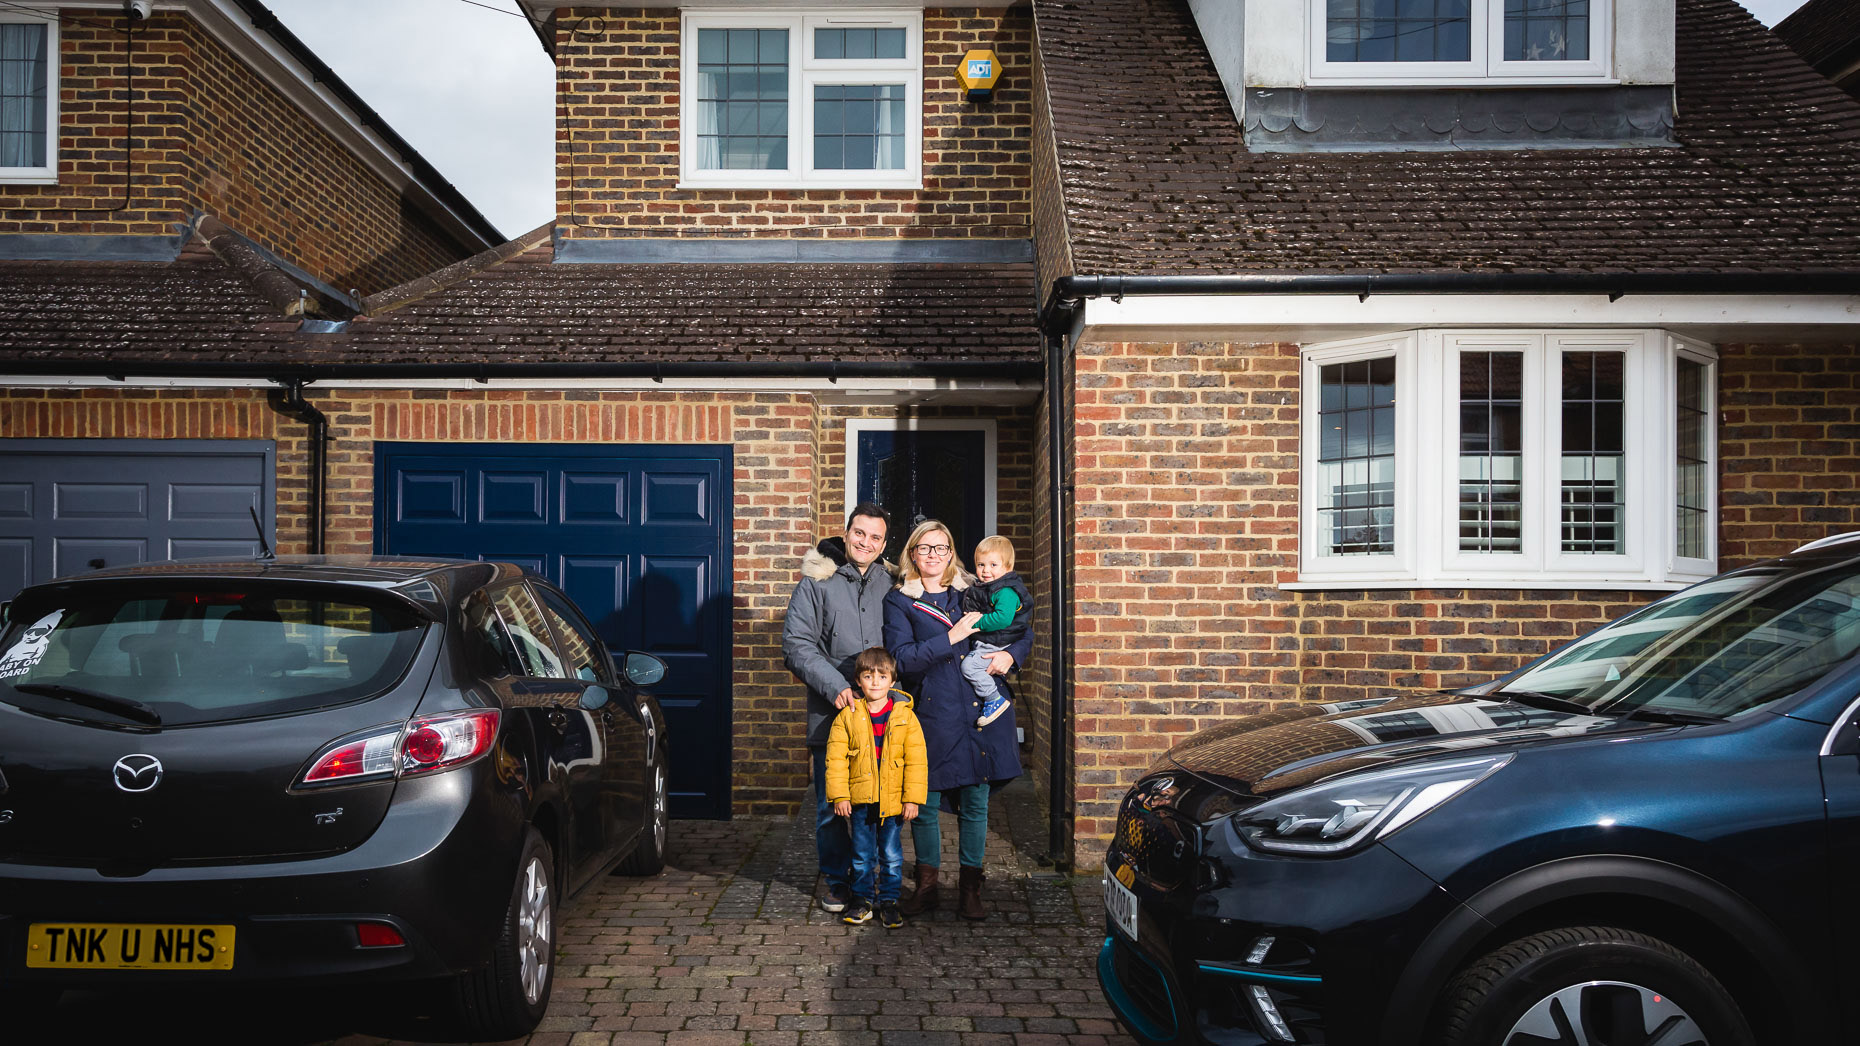 Ashtead Doorstep Portraits 98